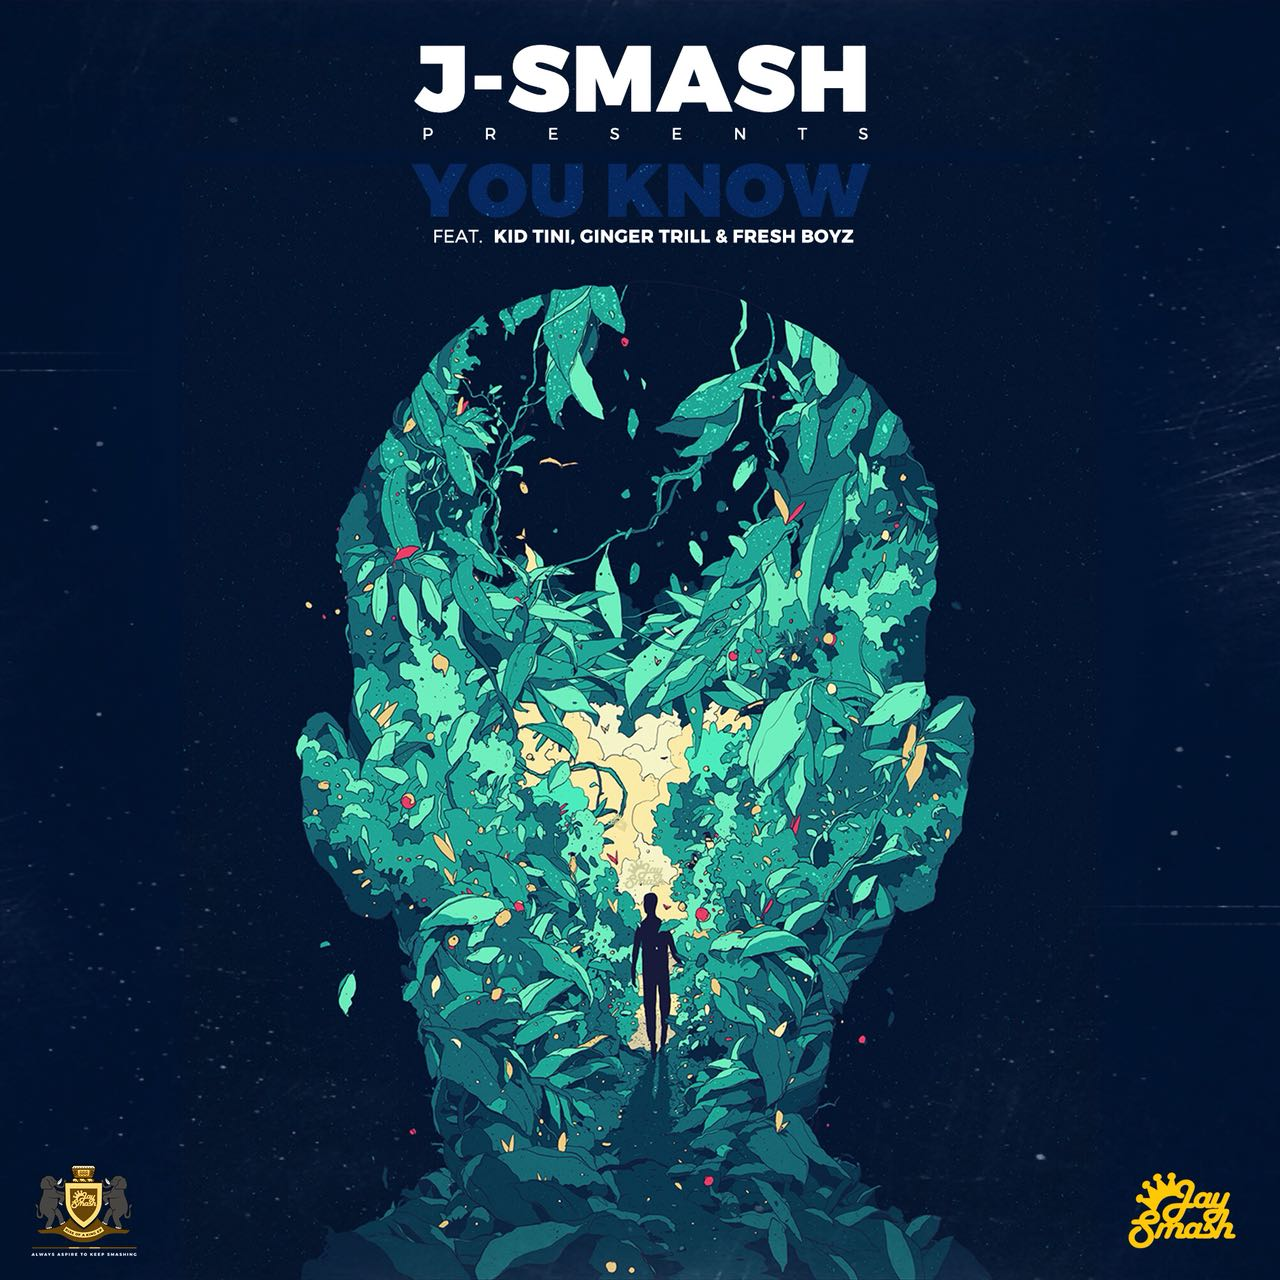 [object object] J-Smash 'You Know' Ft. Kid Tini, Ginger Trill & Fresh Boyz [Download] 2018 03 16 PHOTO 00000082